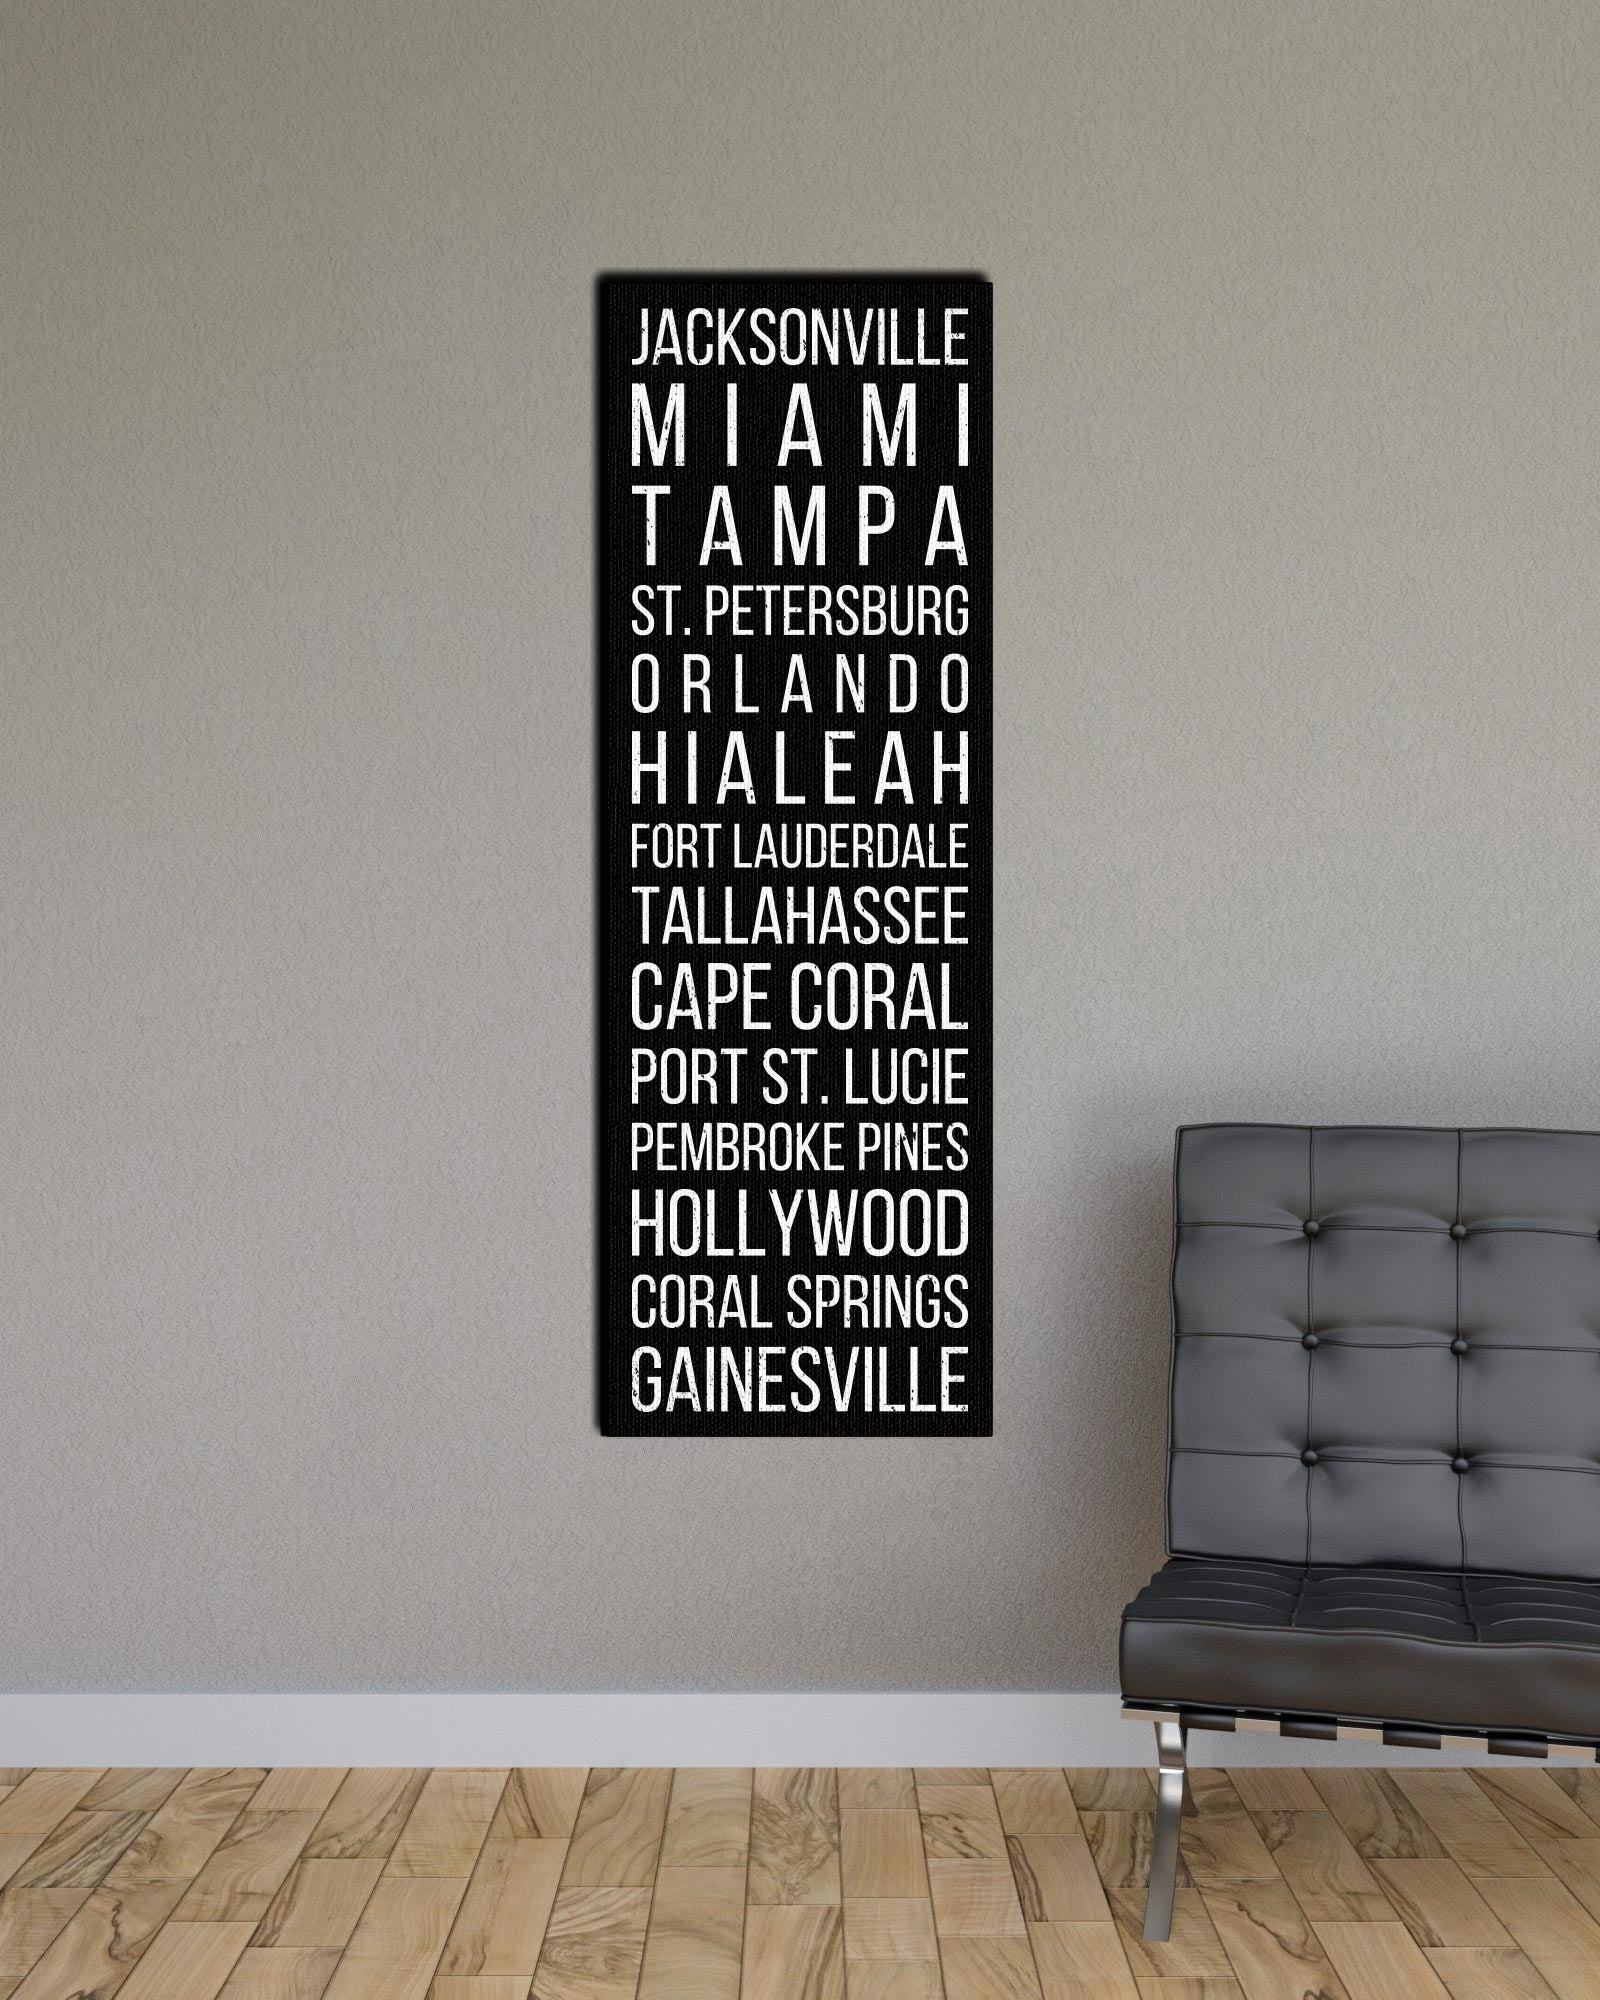 Florida Jacksonville Miami Tampa Bus Scroll Subway Print